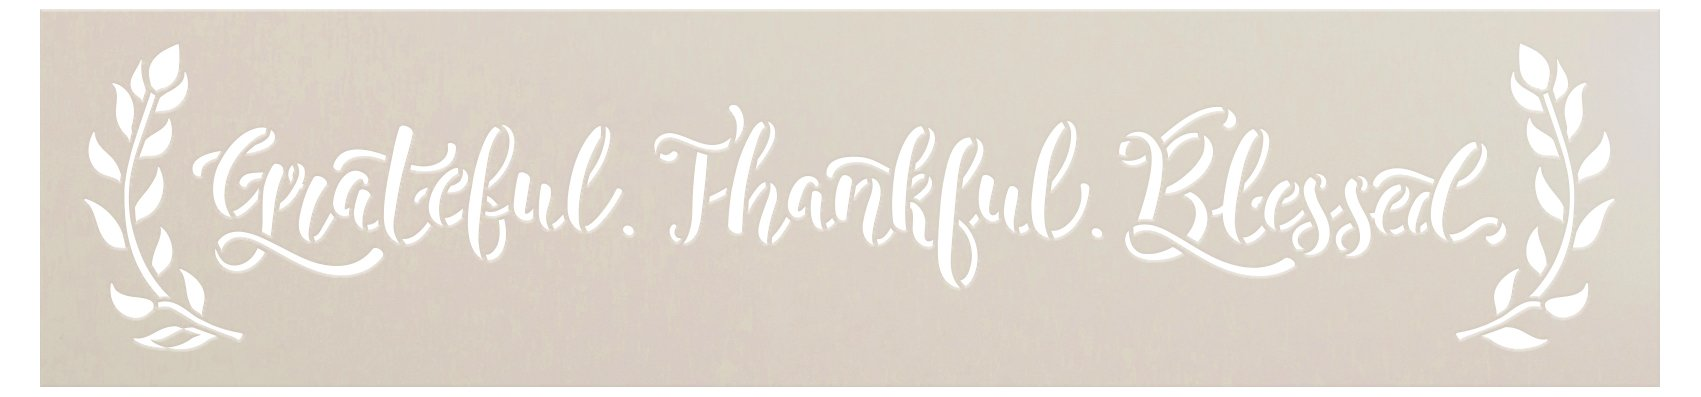 Grateful Thankful Blessed Stencil with Laurels by StudioR12 | DIY Simple Farmhouse Home Decor | Paint Wood Signs | Select Size